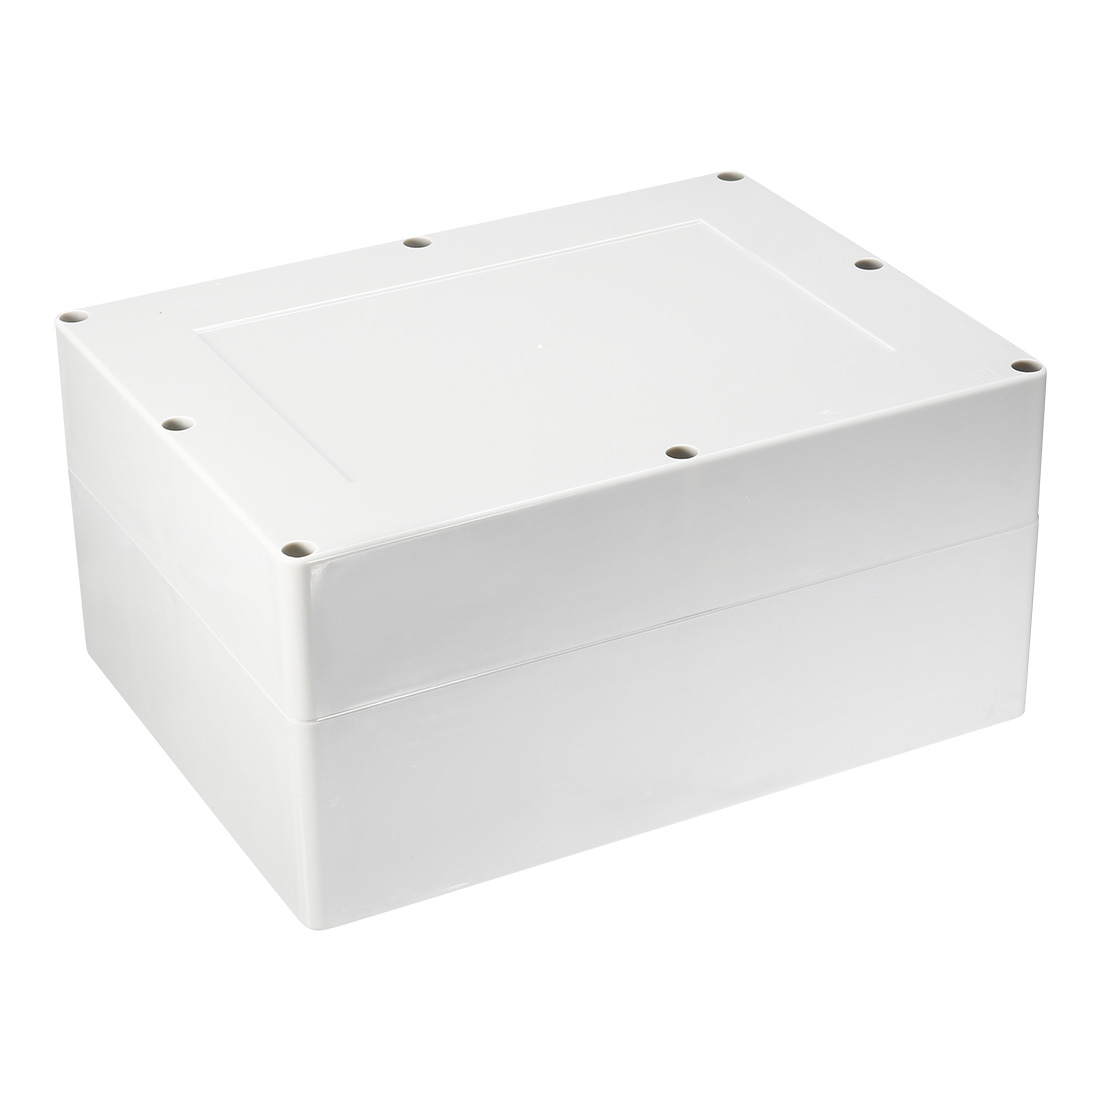 "12.52""x9.29""x6.1"" (318mmx236mmx155mm) Junction Box Universal Project Enclosure"